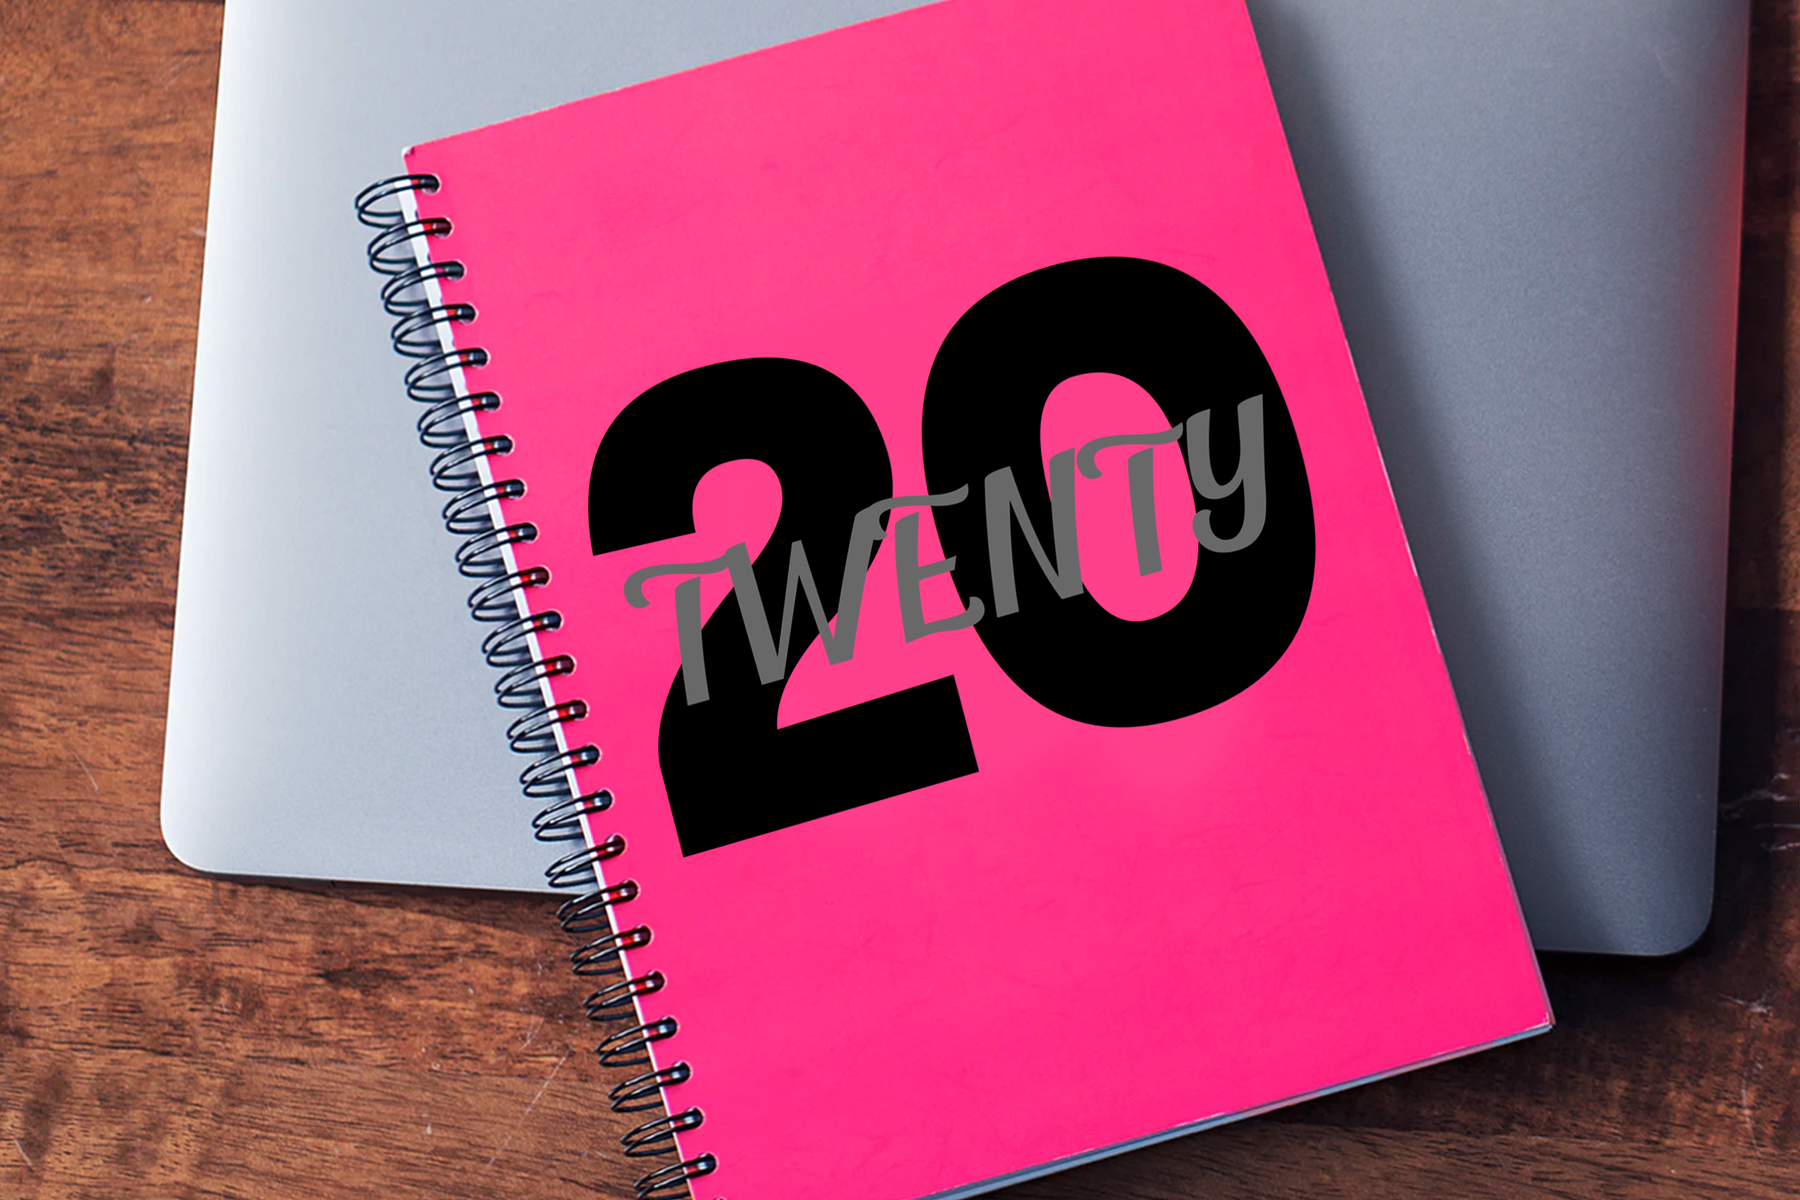 2020, A 20 Twenty New Year SVG Cut or Print File example image 2